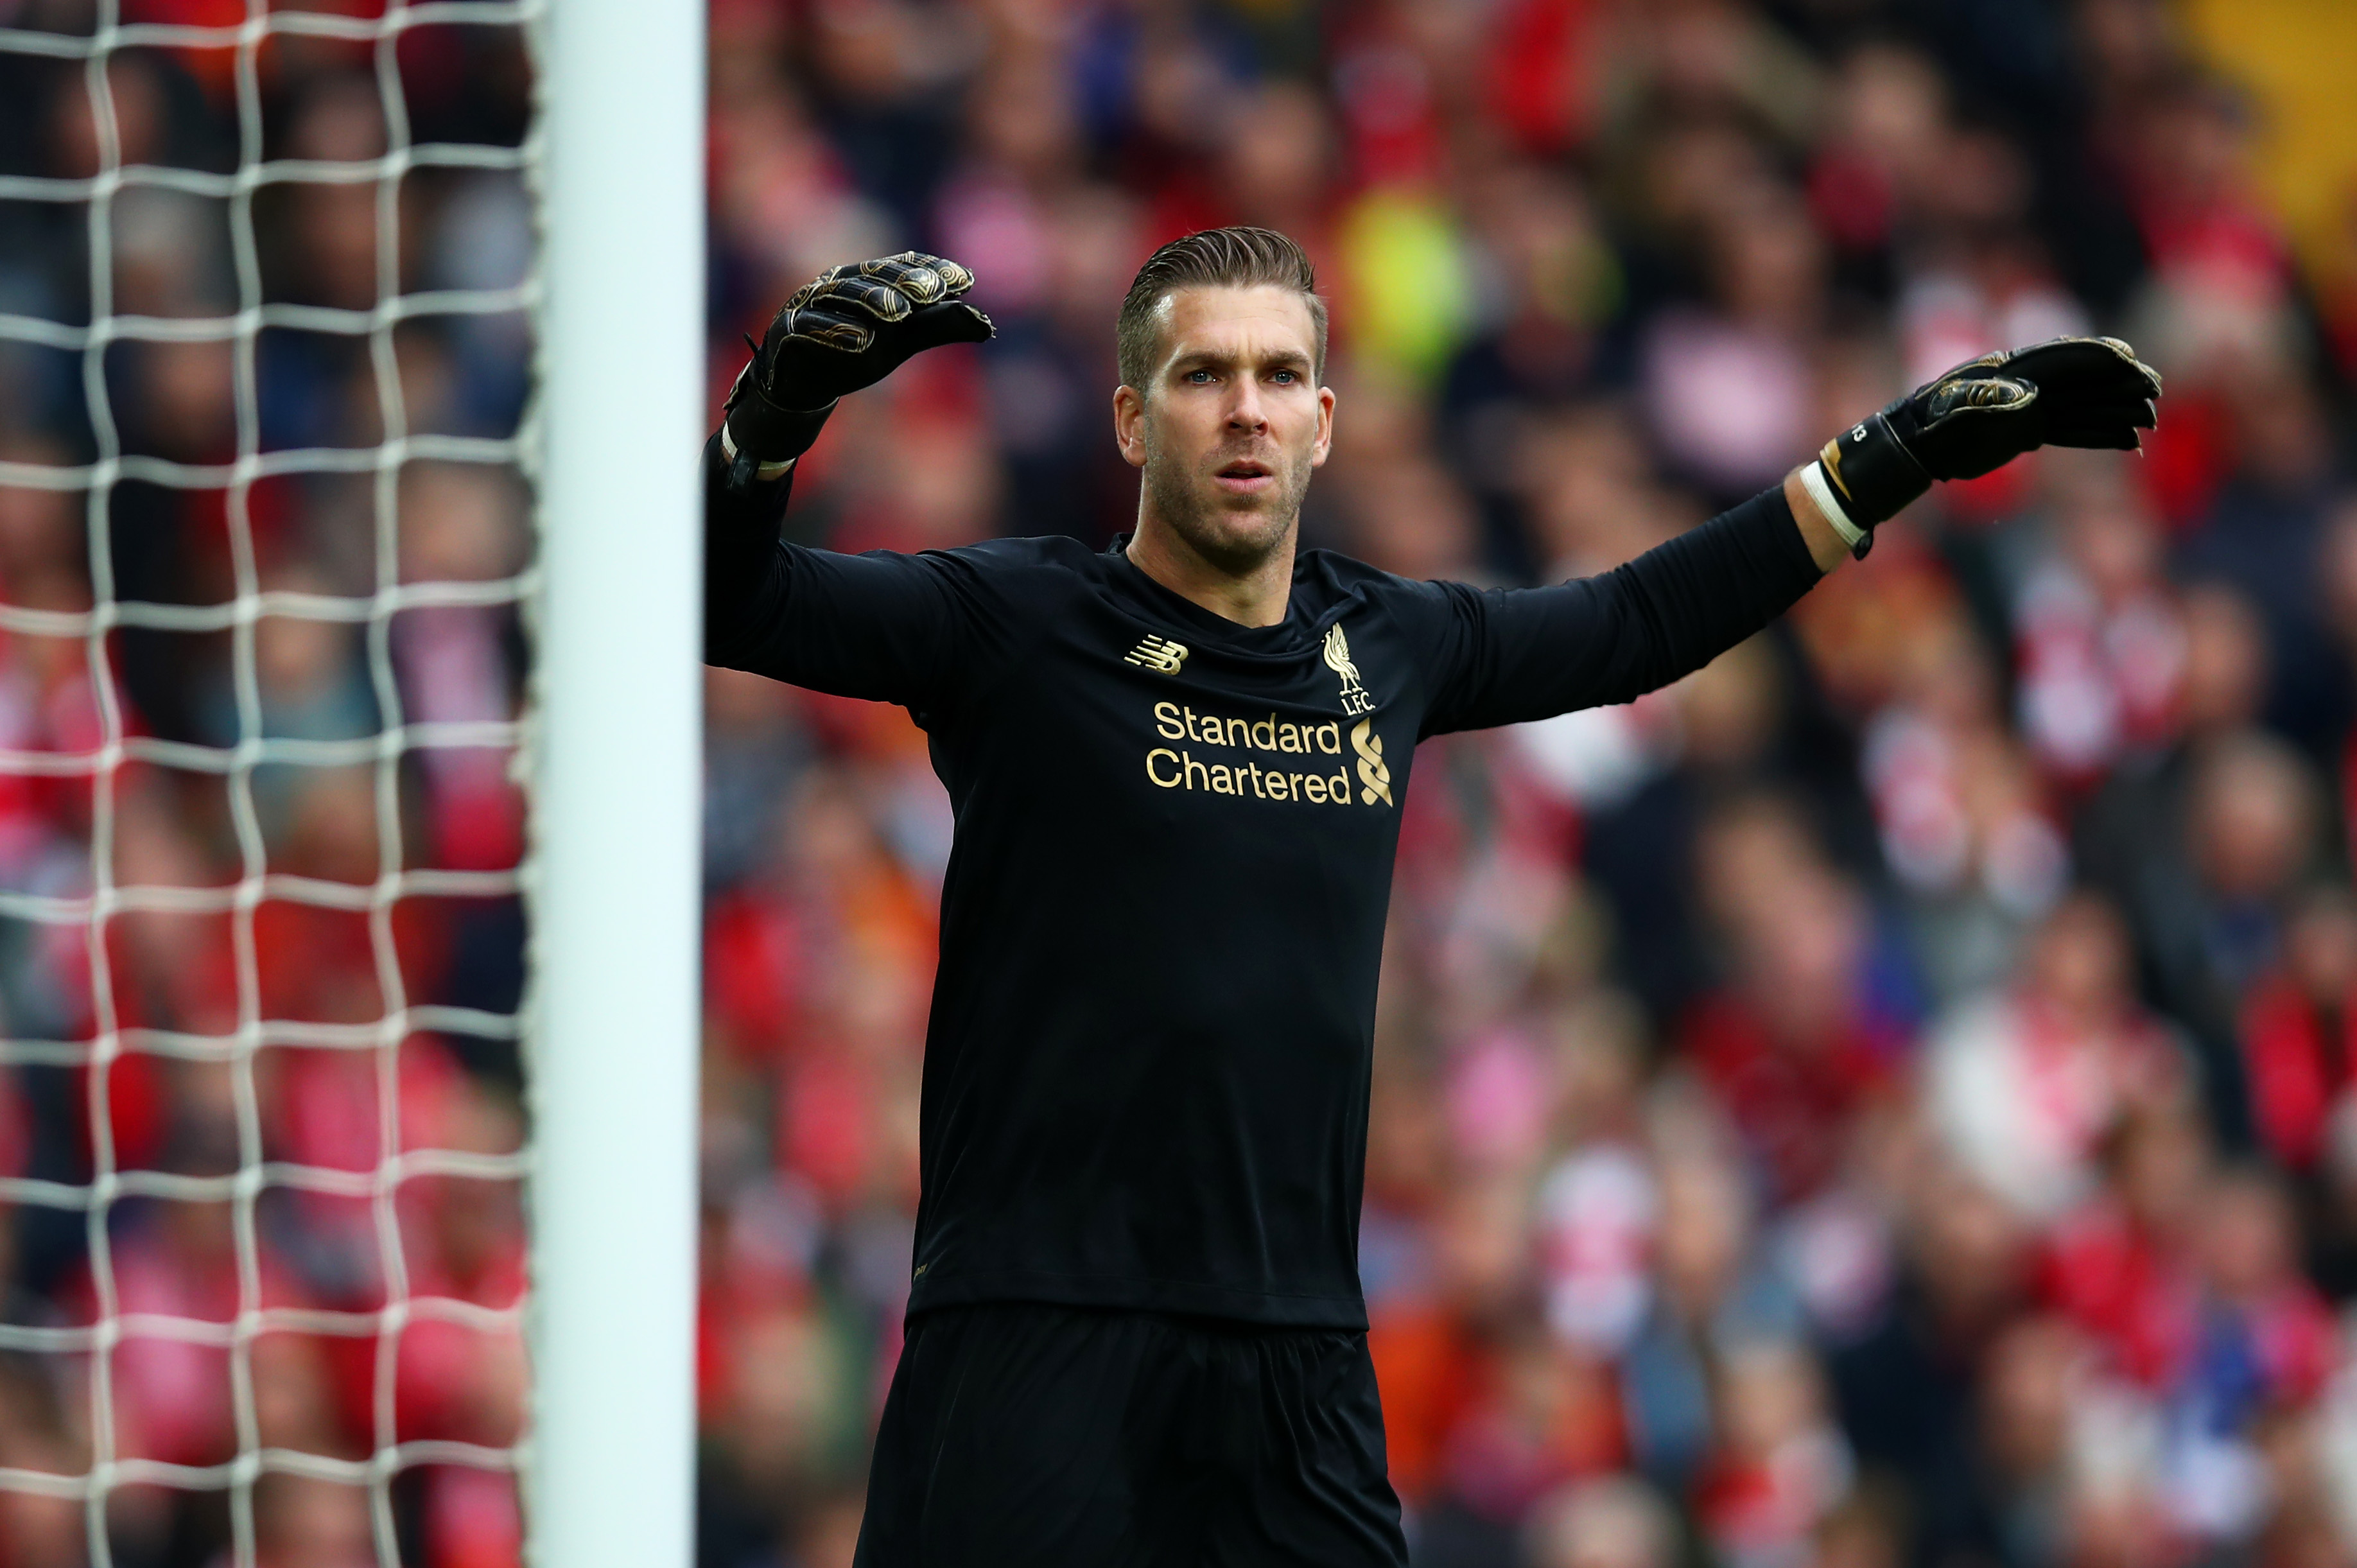 Adrian has struggled at Liverpool (Photo by Clive Brunskill/Getty Images)